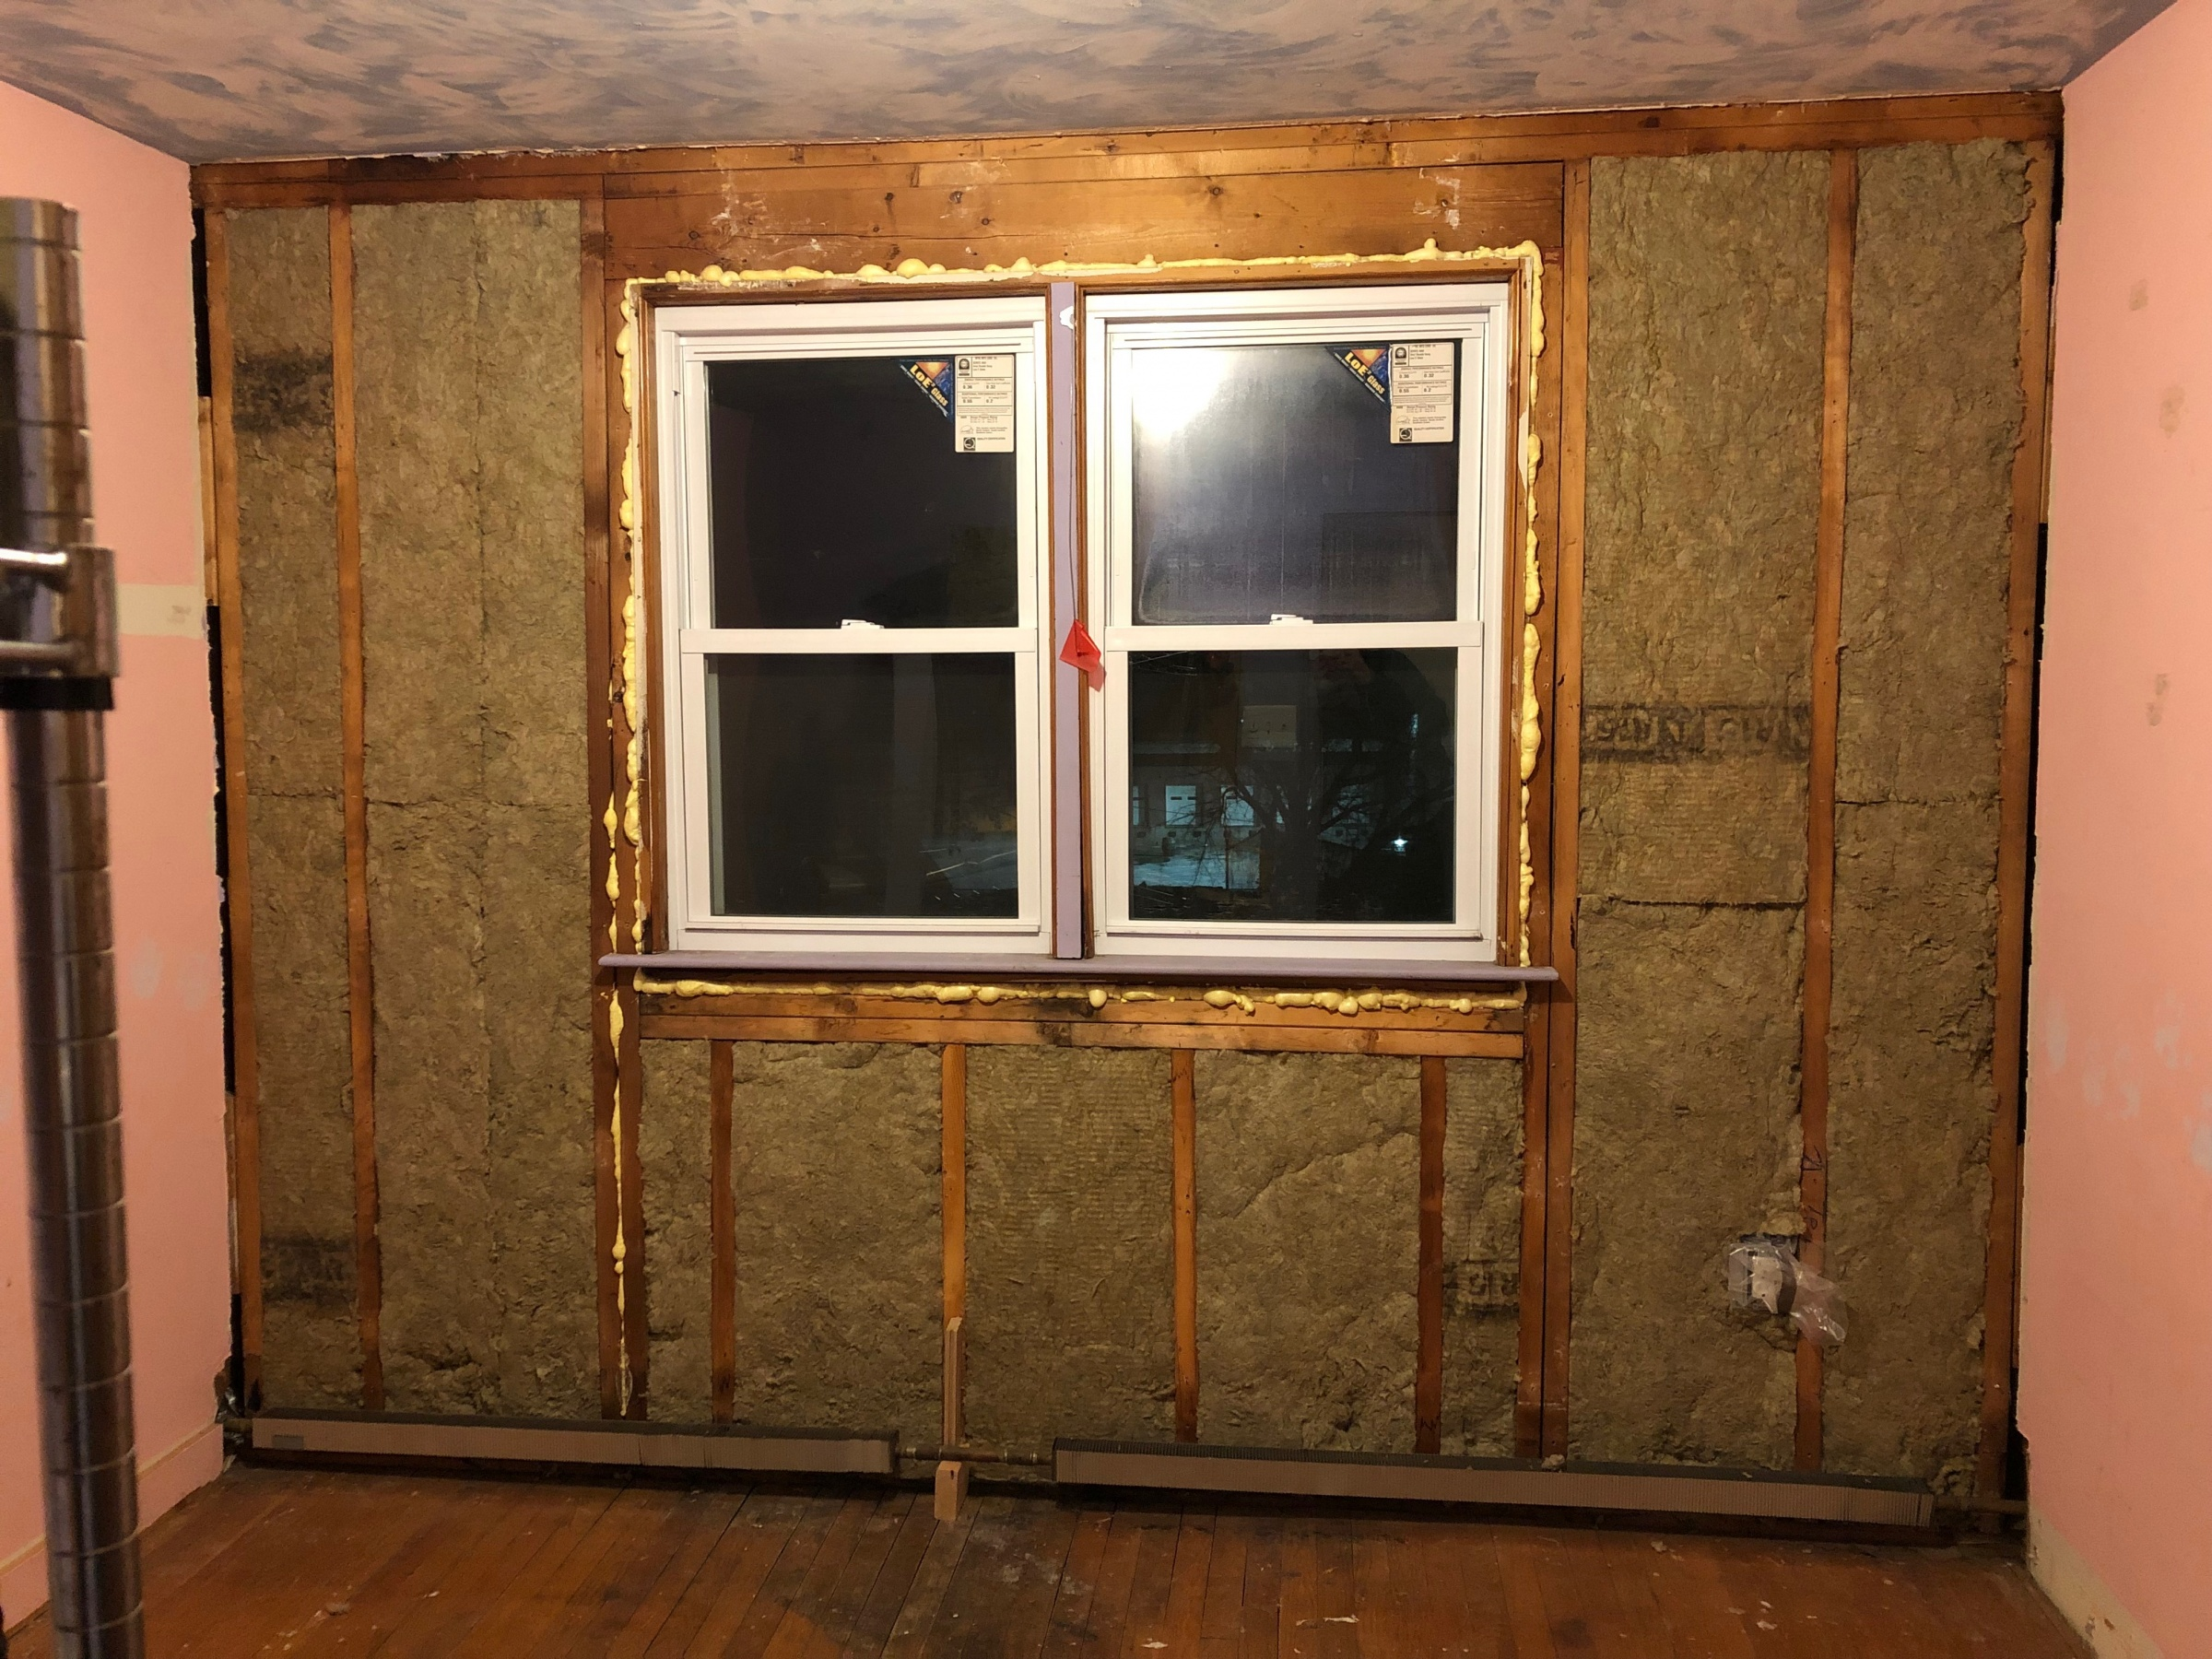 Canned Spray Insulation Not Sticking Well-img_6827.jpg